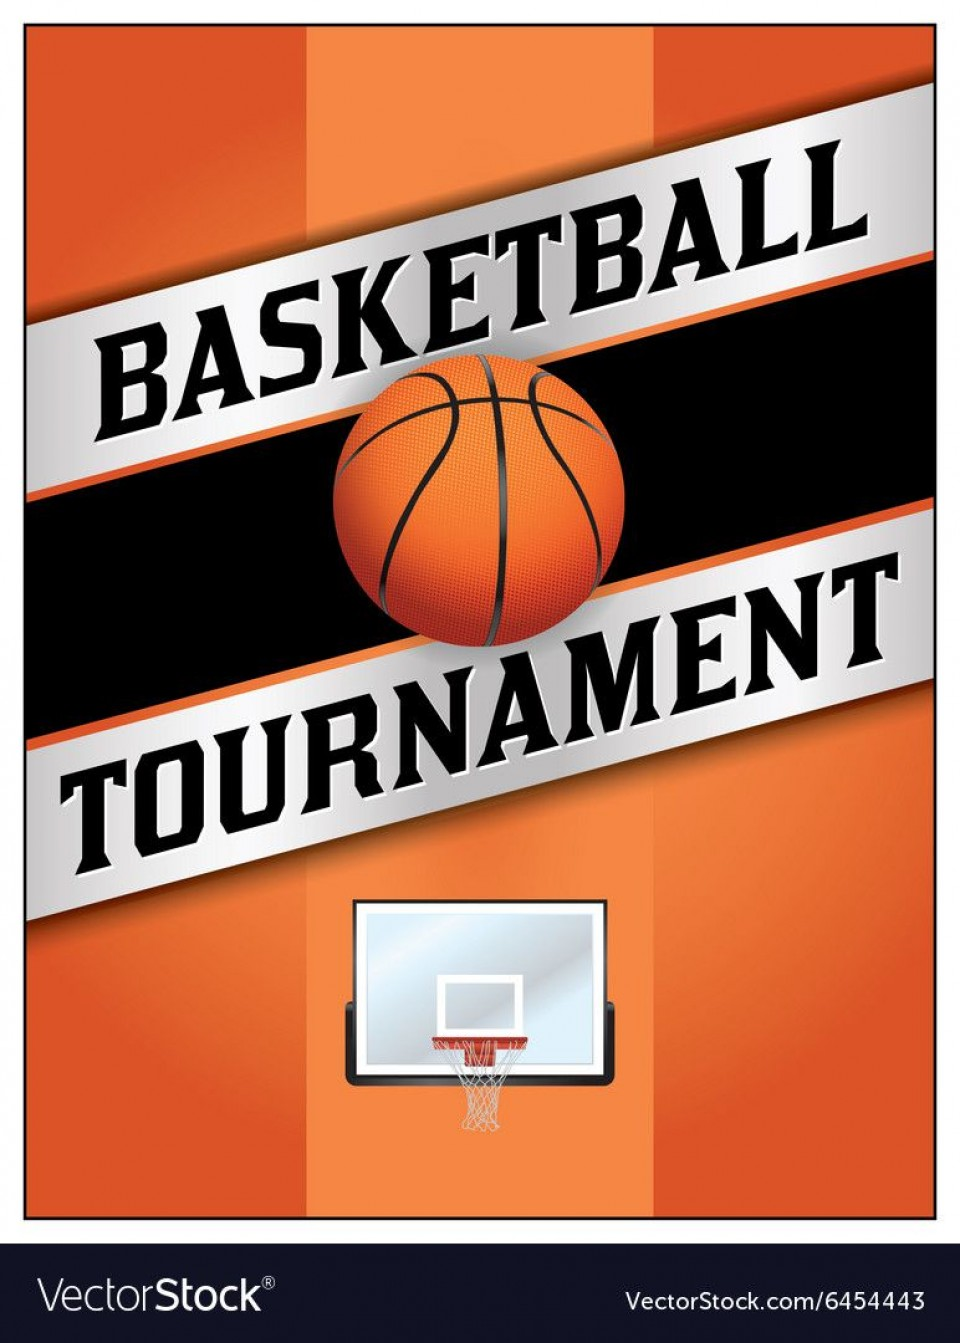 004 Top Basketball Tournament Flyer Template Highest Quality  3 On Free960